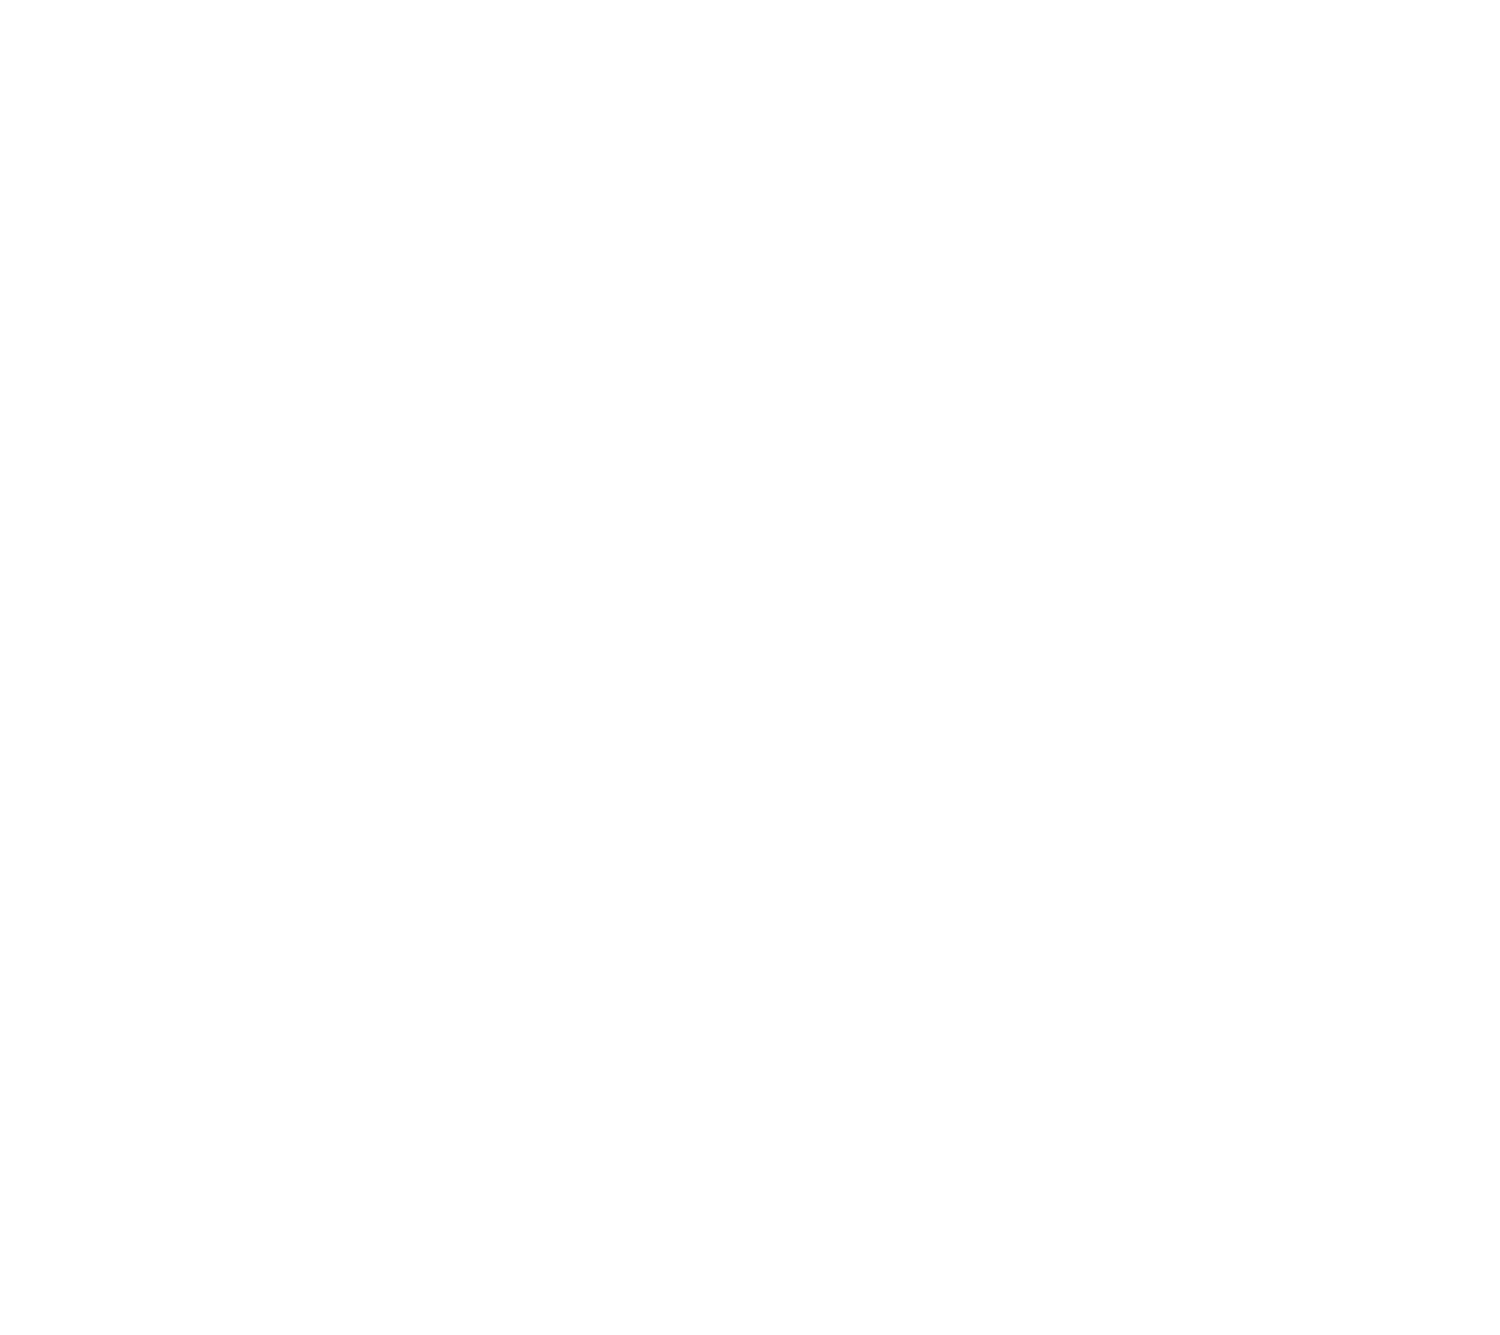 Ashton Construction